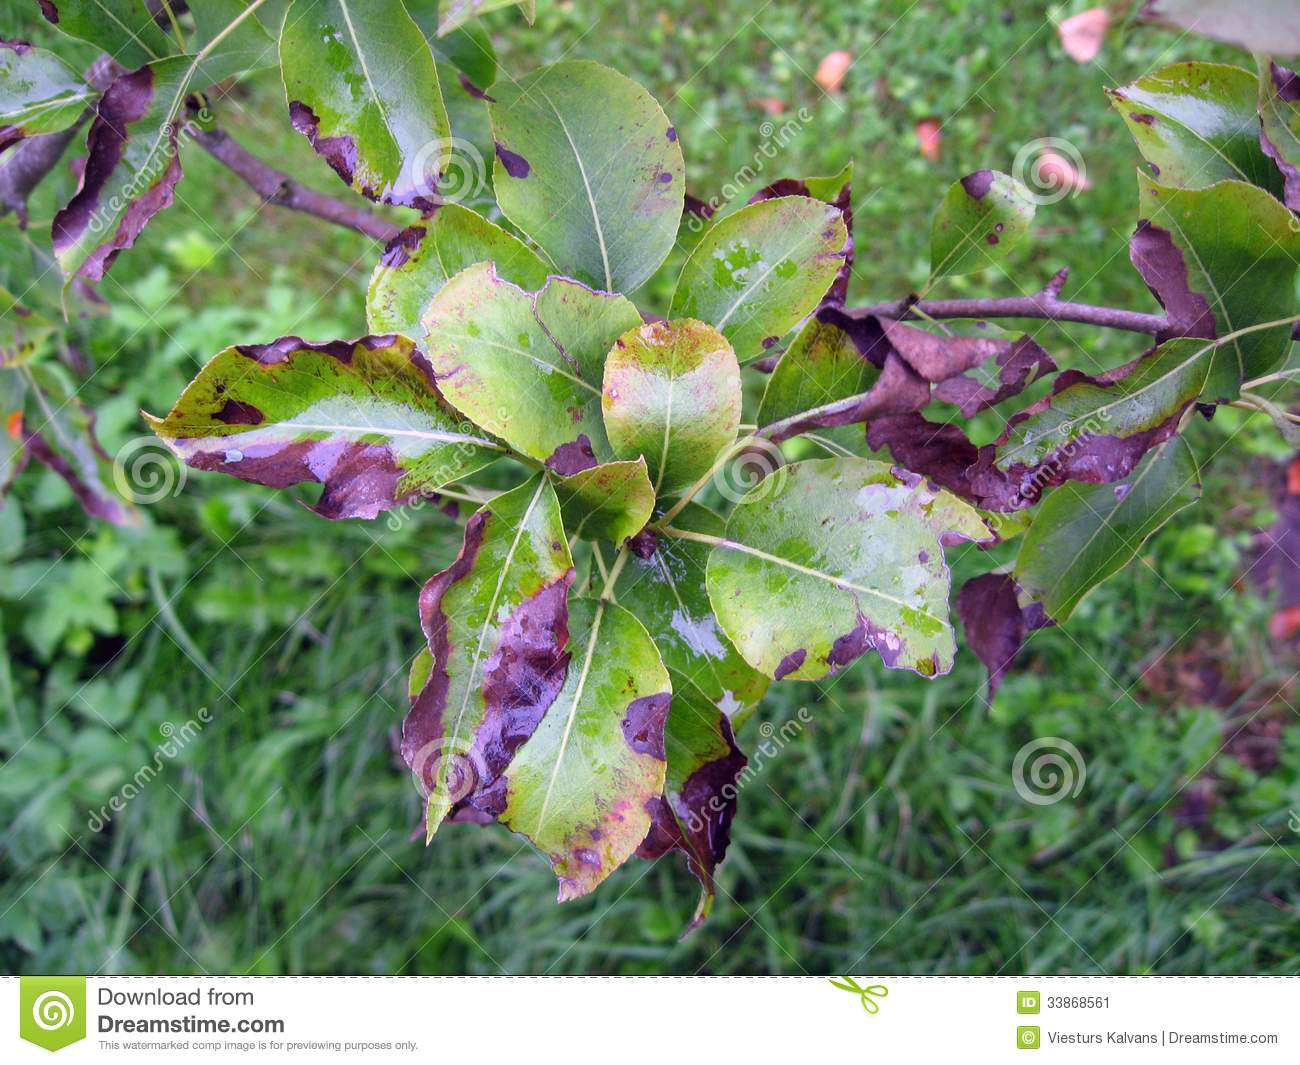 Fire Blight On Pear Tree Stock Image.